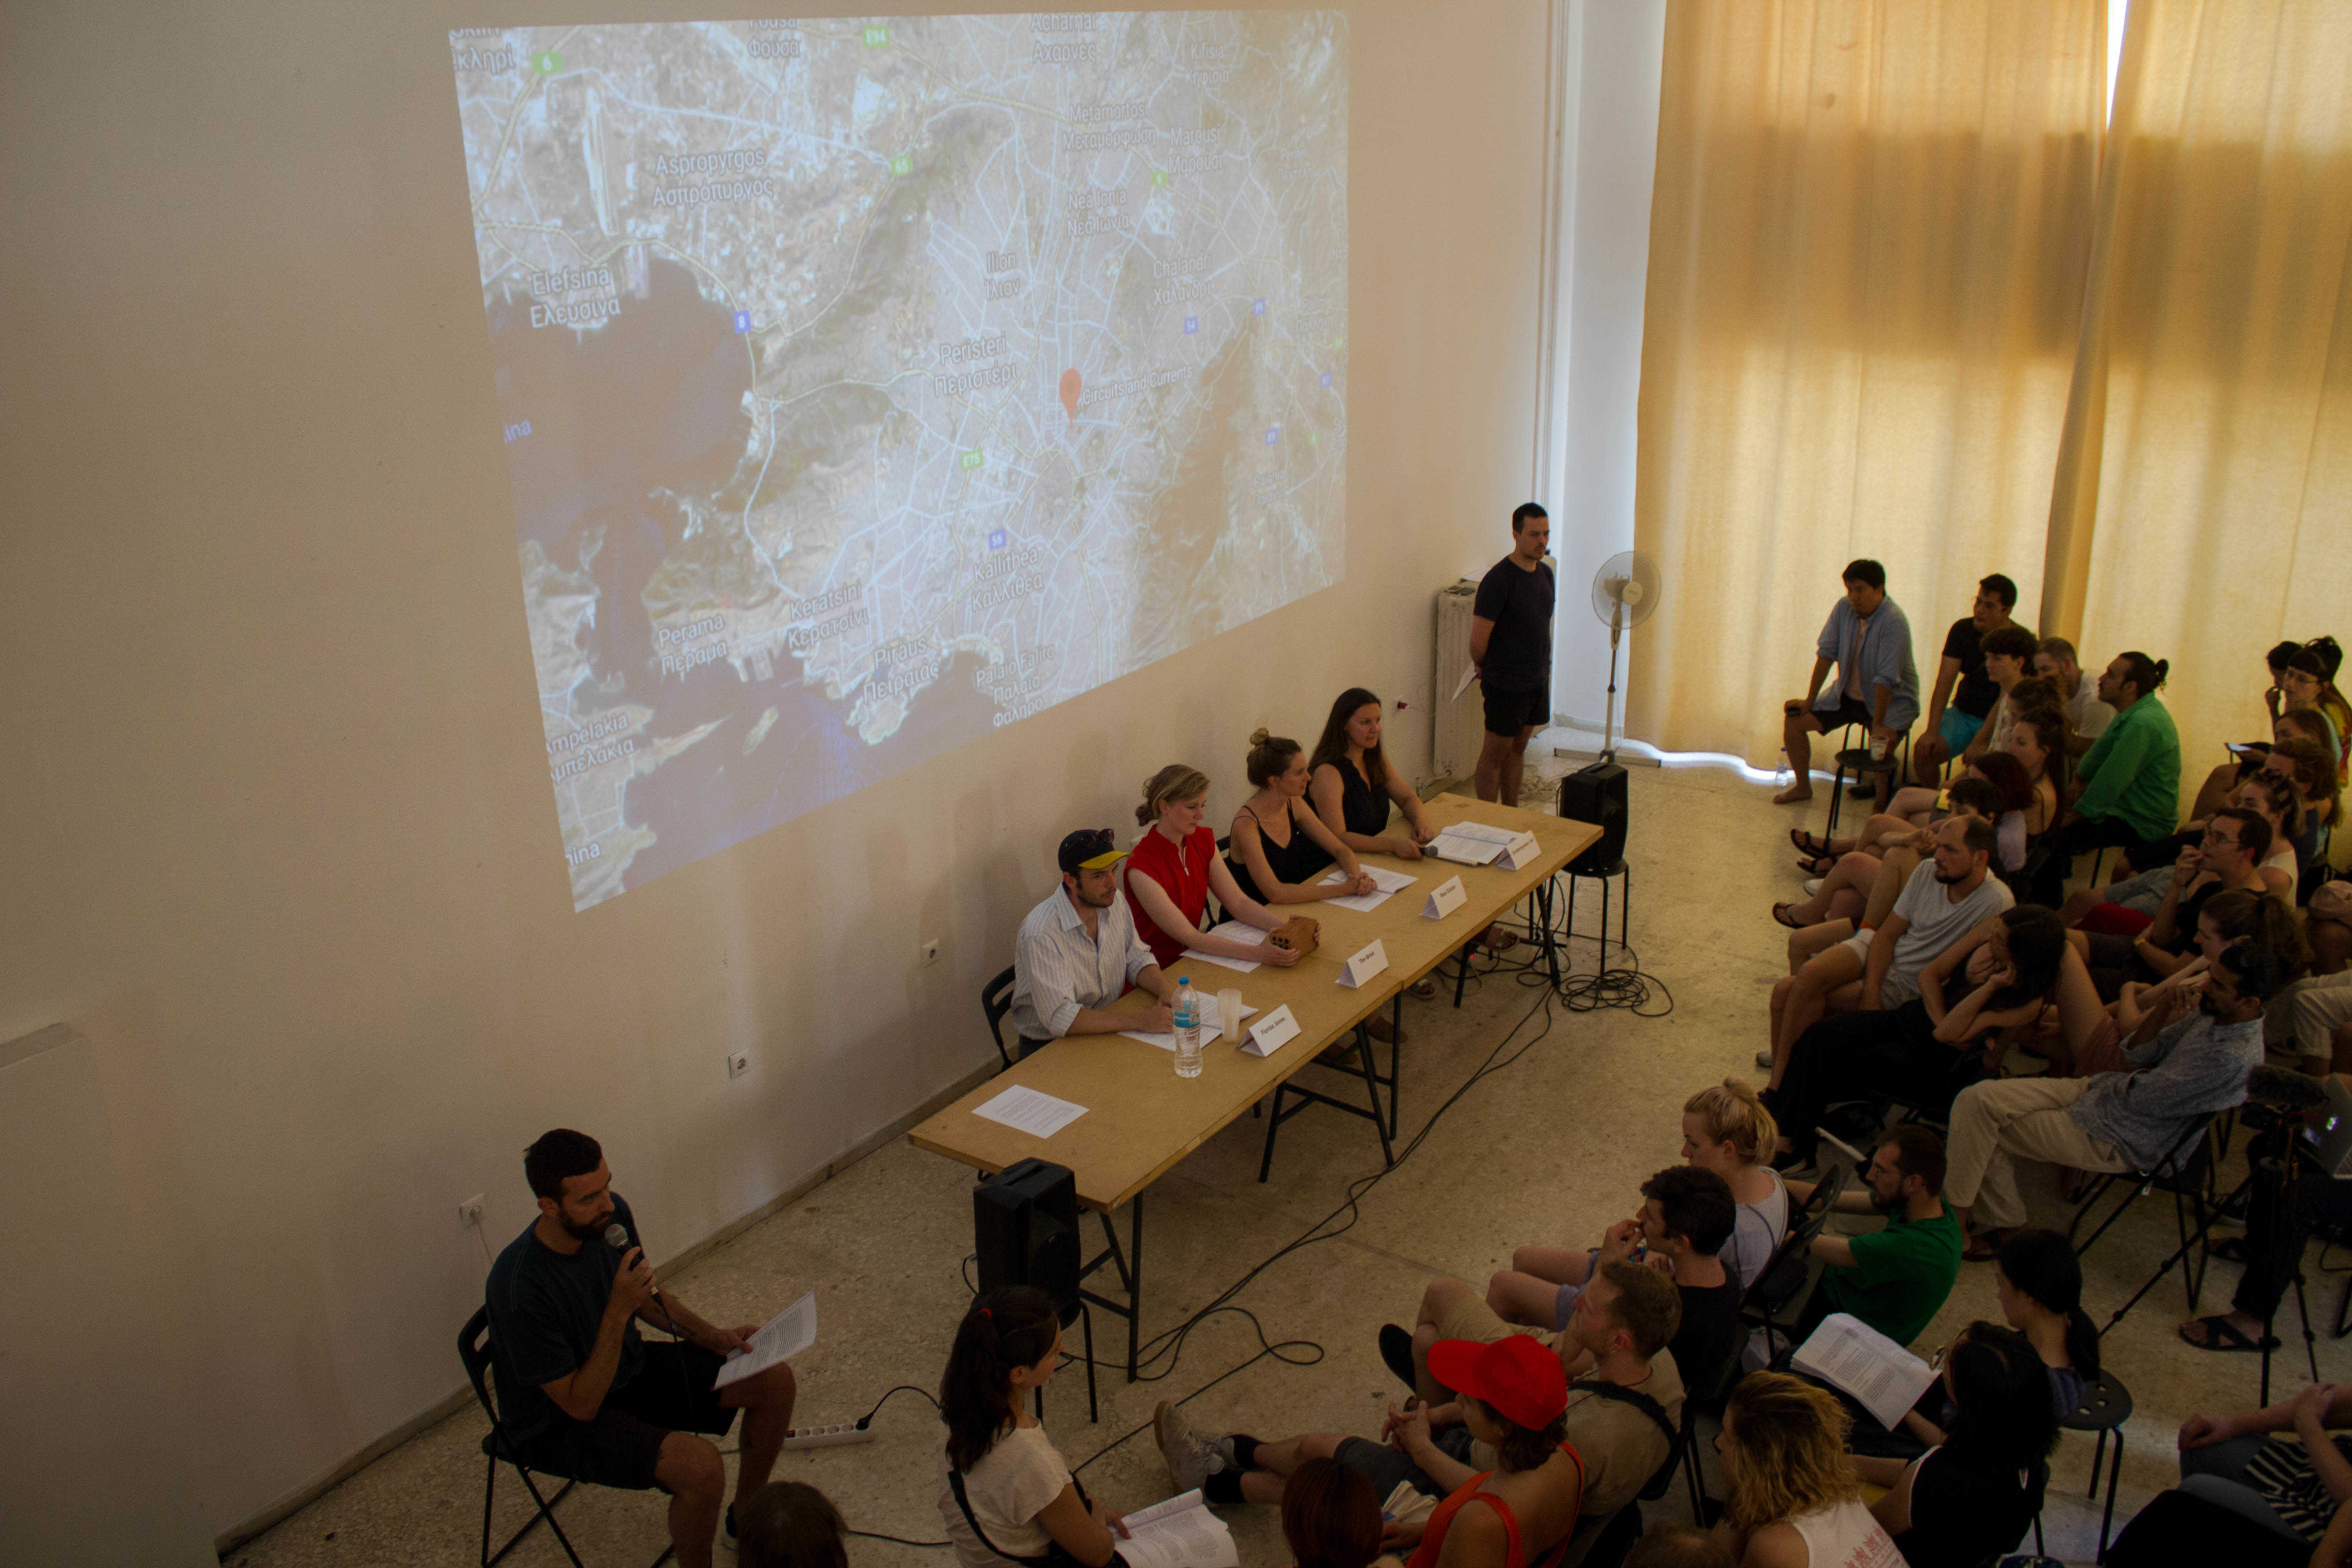 COOP Summit 2018: Presetation by the REALTY study group at the Circuits & Currents Project Space of the Athens School of Fine Arts, on the 2nd of June. Photo: Silvia Ulloa for DAI Roaming Academy.